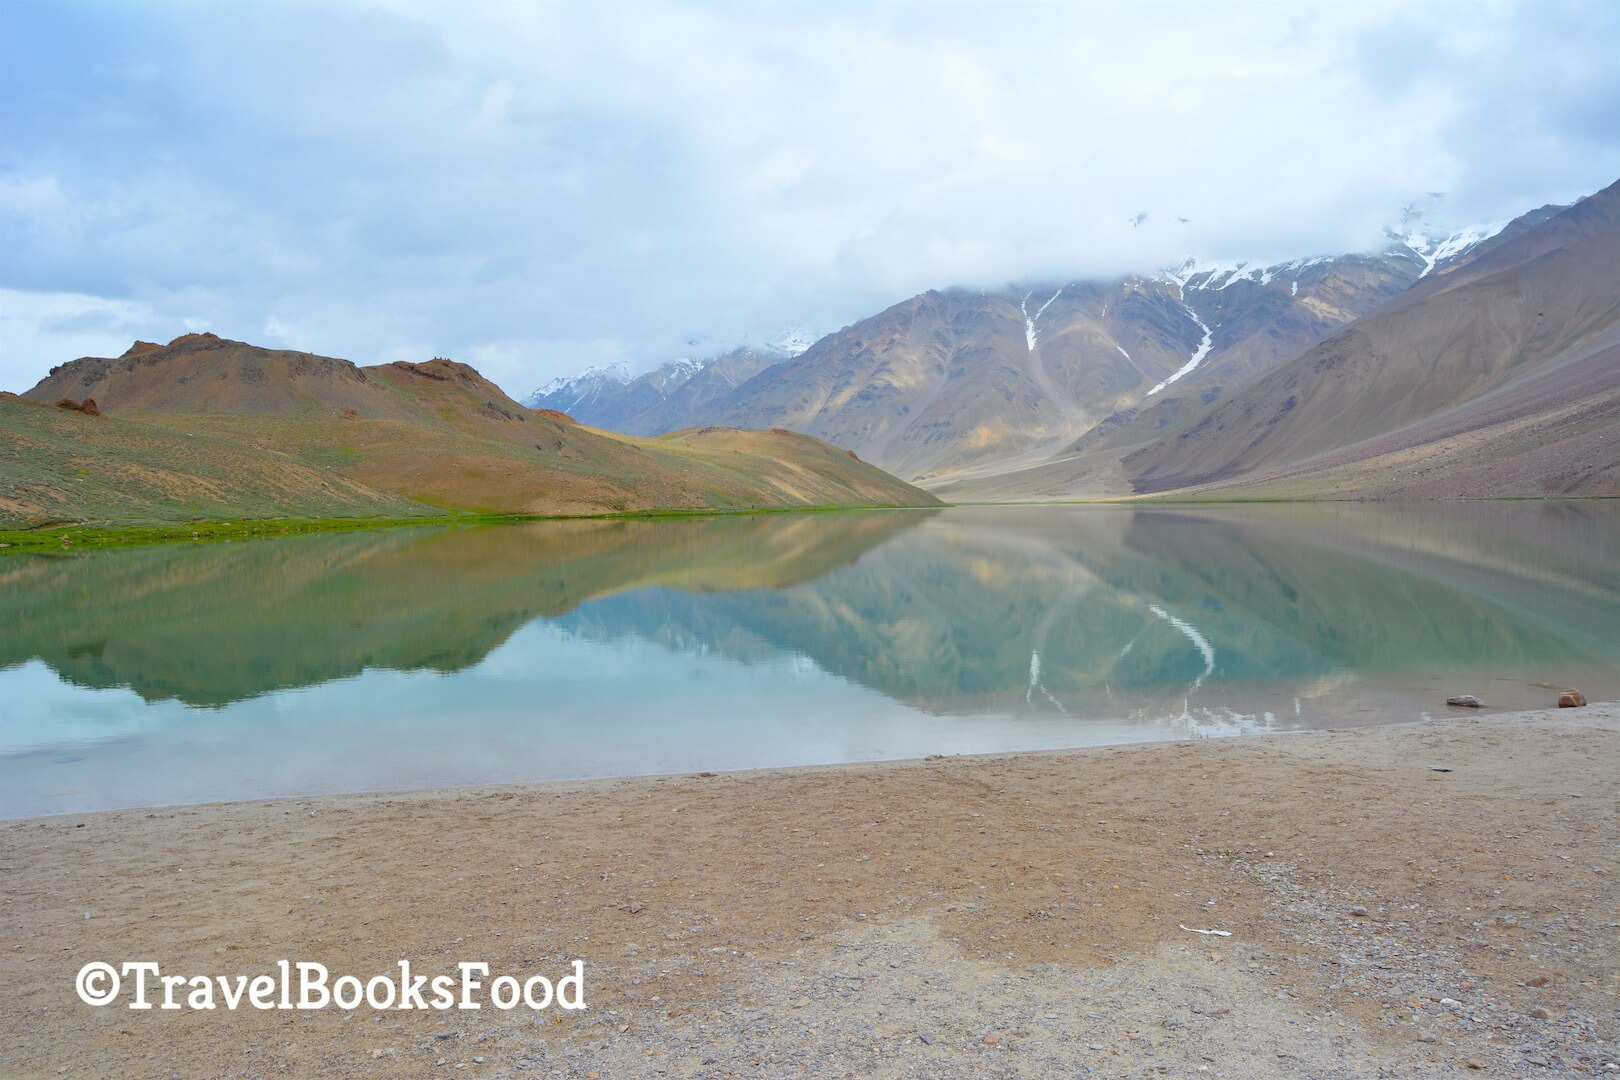 A beautiful lake, Chandrataal lake in the middle of many mountains